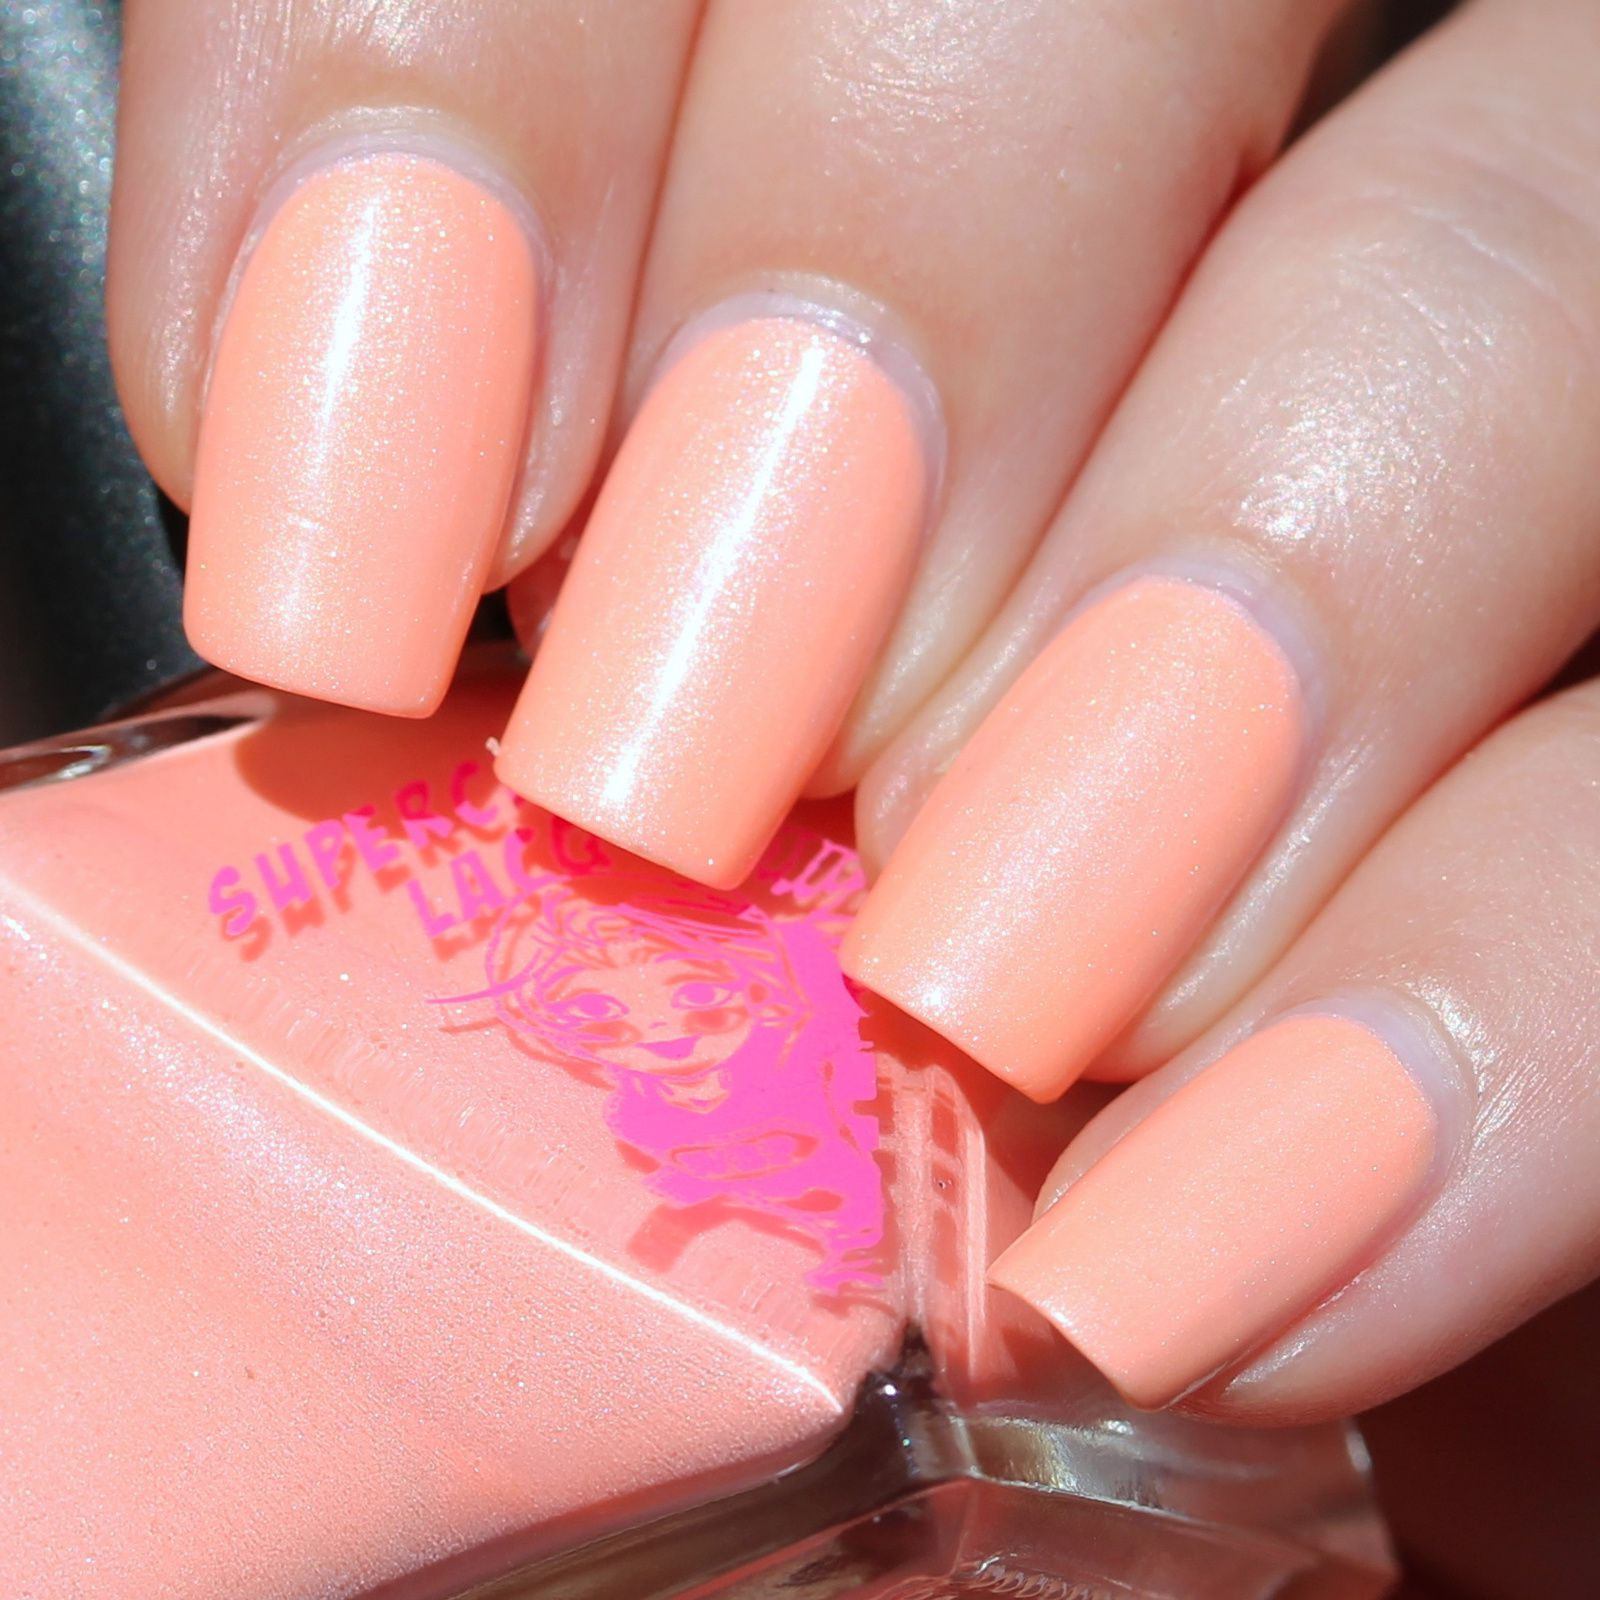 Essie Protein Base Coat / Superchic Lacquer Cause & Effect / Sally Hansen Miracle Gel Top Coat